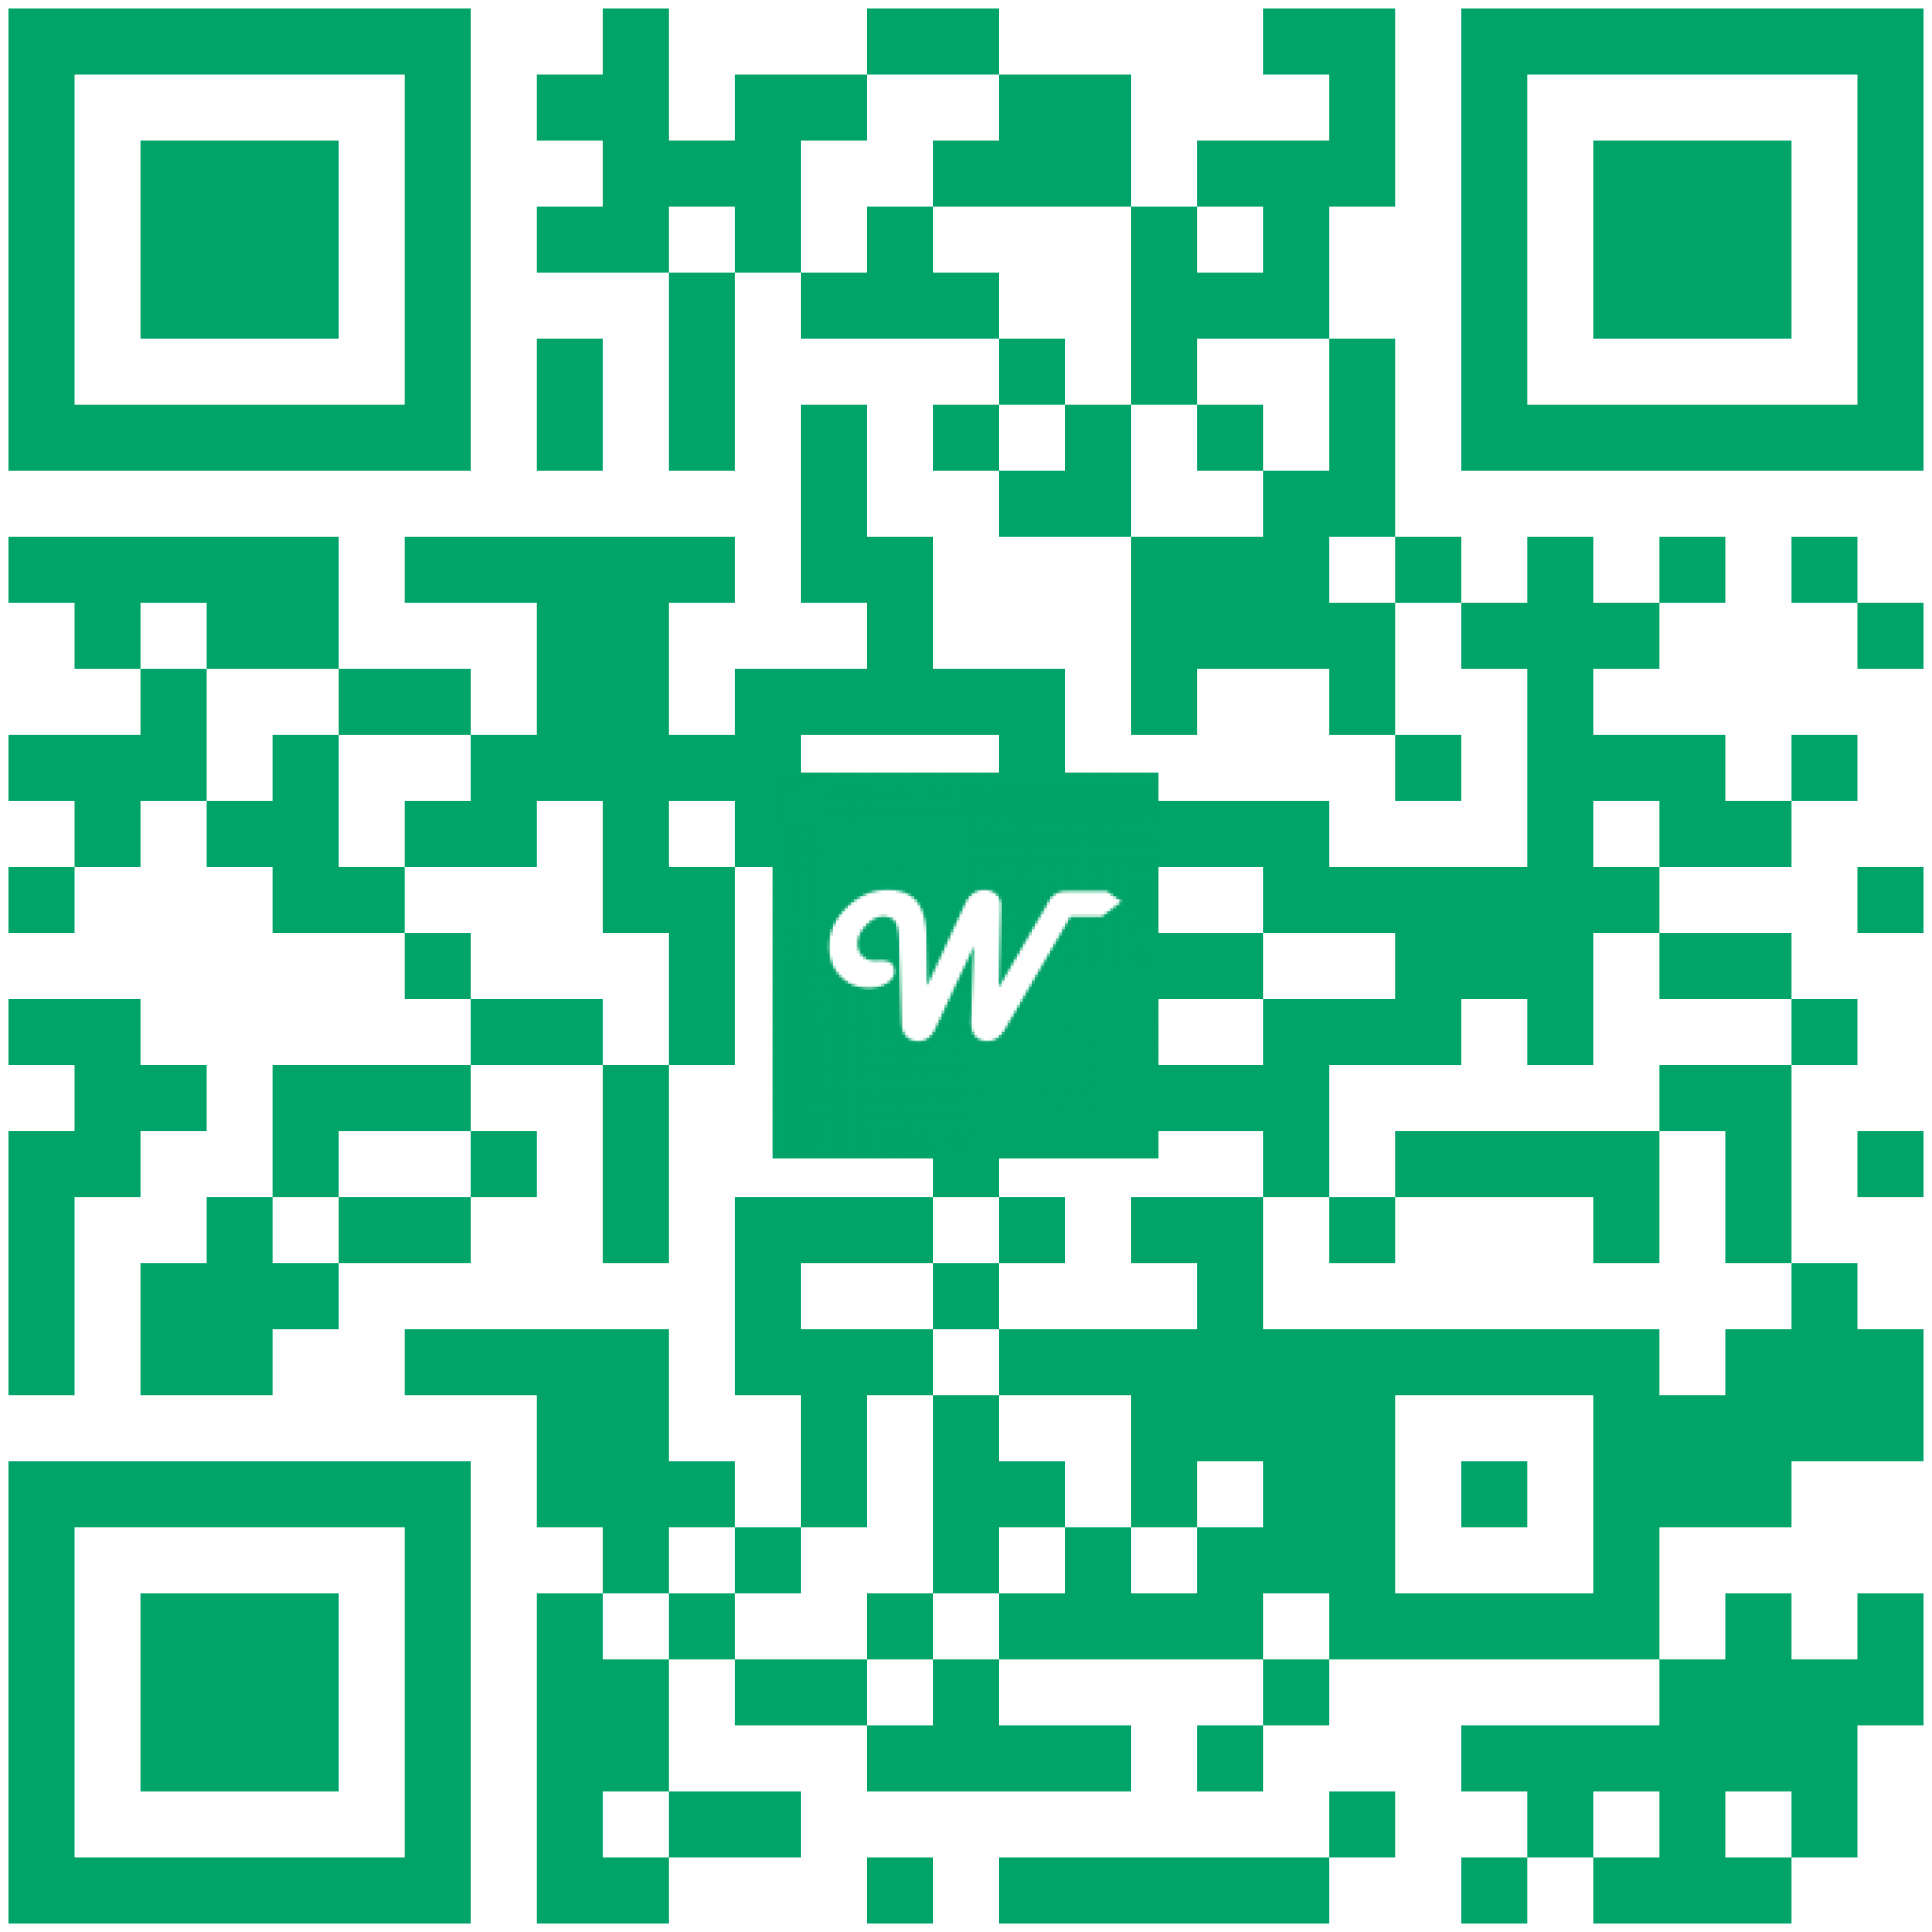 Printable QR code for Farm to Market Road 913